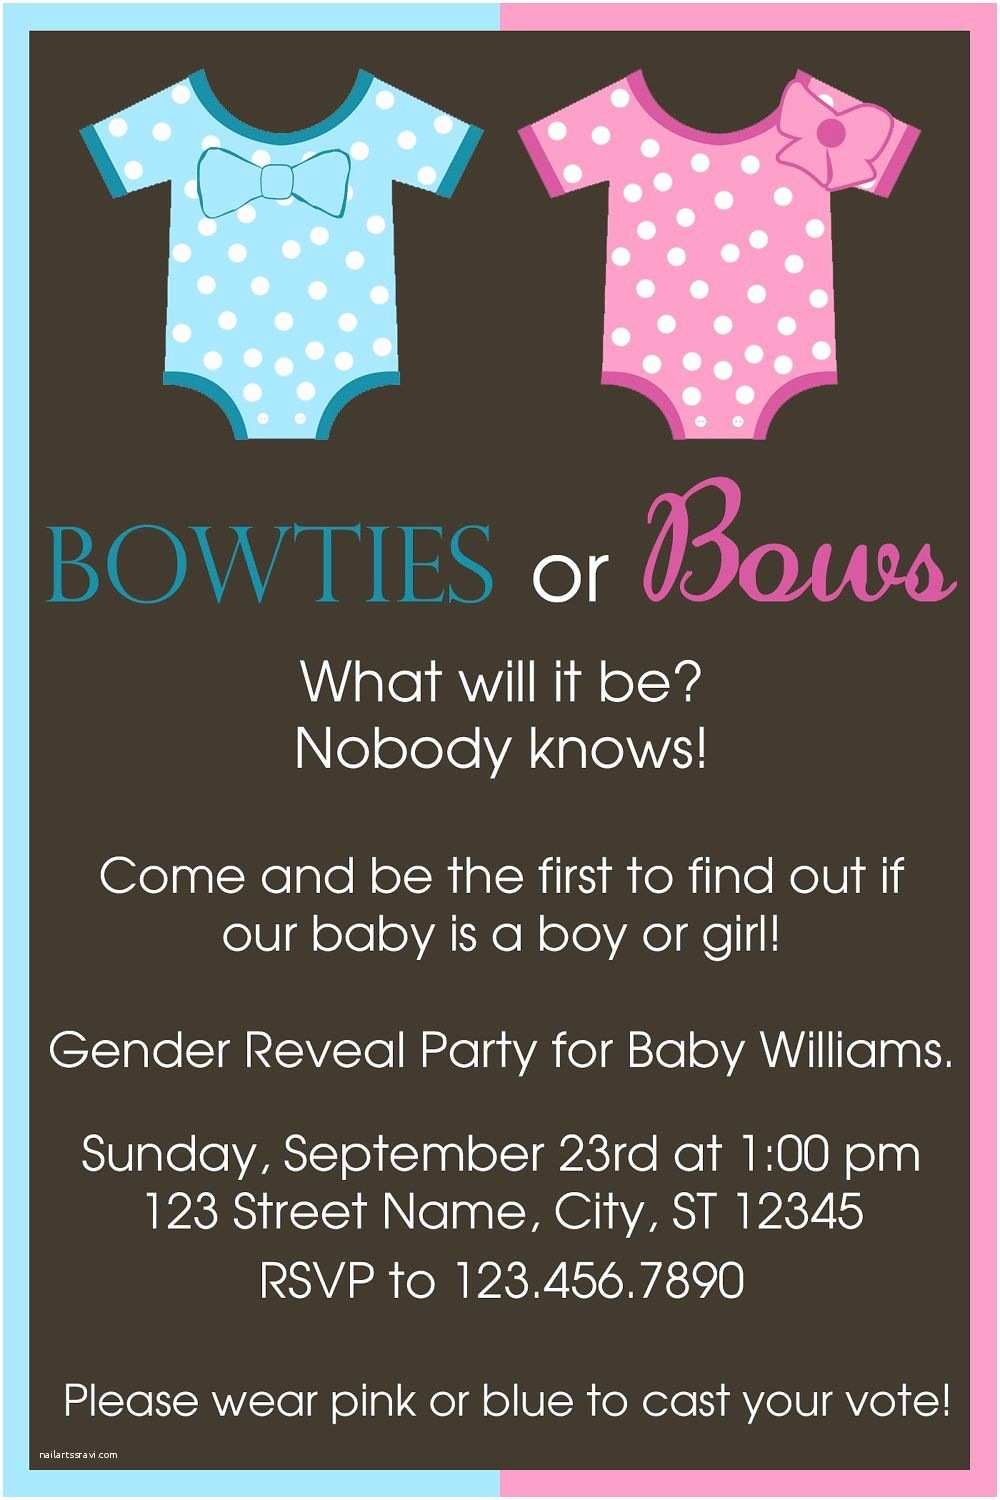 Reveal Party Invitations Gender Reveal Ideas Pinned for Babybump the 1 Mobile